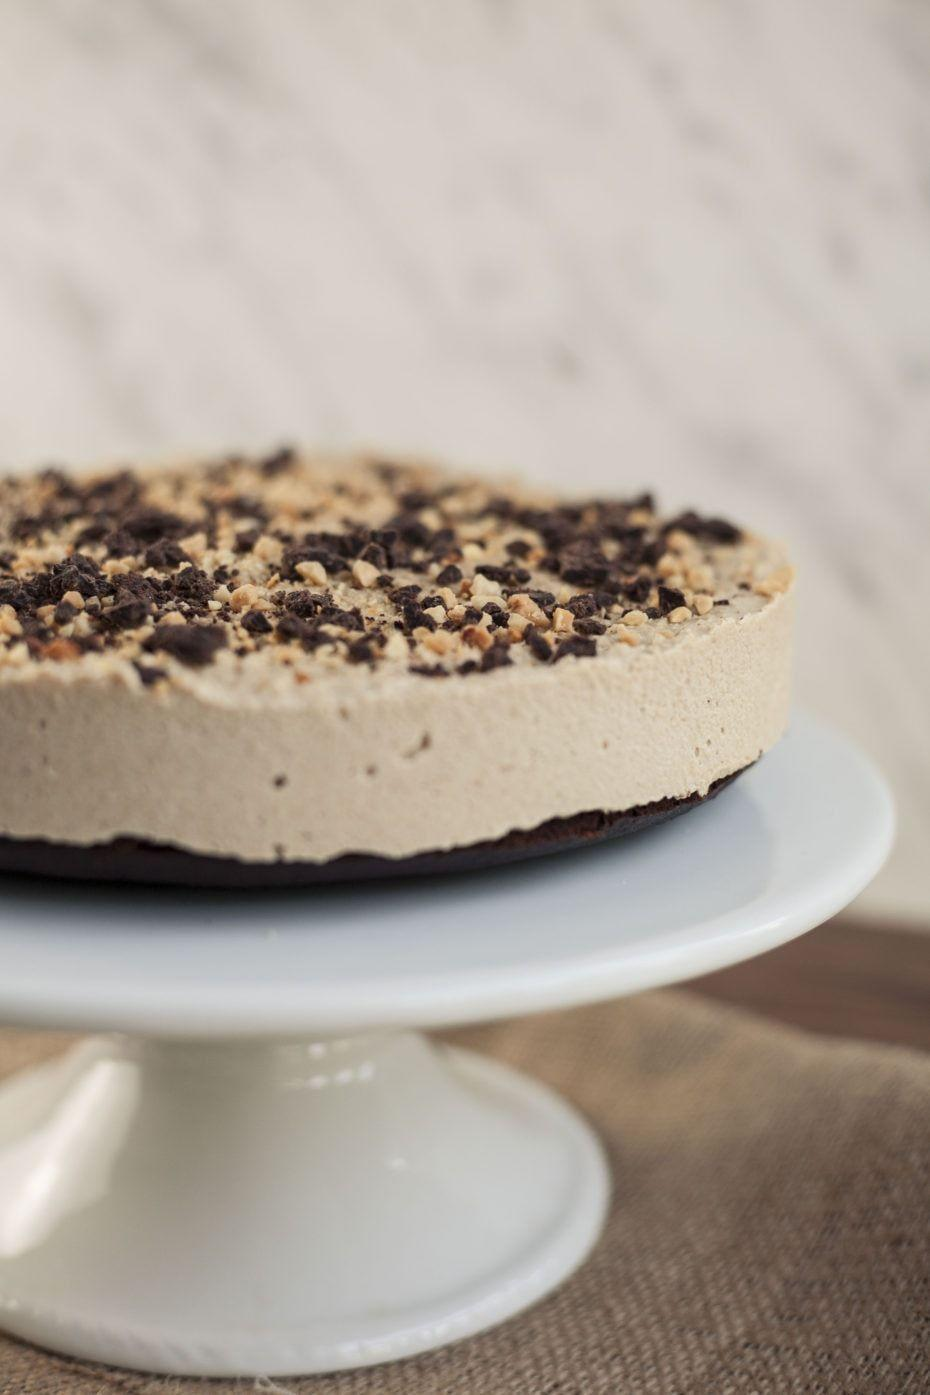 """<p>Do I need to say anything more than SNICKERS? I didn't think so. </p><p><a class=""""link rapid-noclick-resp"""" href=""""https://mypureplants.com/caramel_cheesecake"""" rel=""""nofollow noopener"""" target=""""_blank"""" data-ylk=""""slk:GET THE RECIPE"""">GET THE RECIPE</a></p><p><em>Per serving: 348 calories, 31 g fat (17 g saturated), 16 g carbs, 14 mg sodium, 5 g sugar, 2 g fiber, 7 g protein</em></p>"""